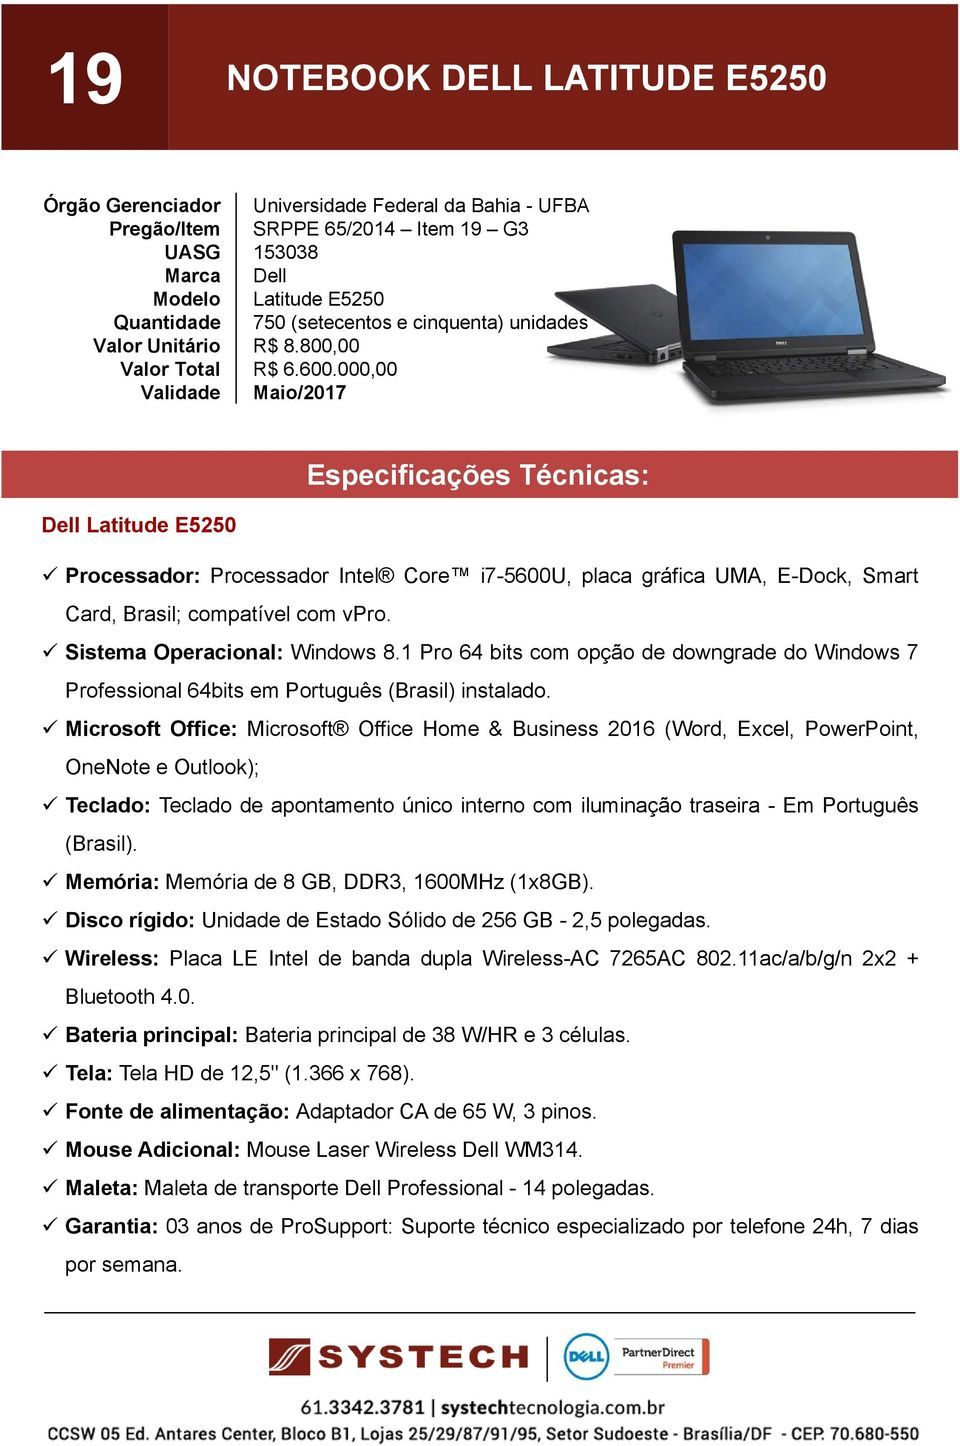 1 Pro 64 bits com opção de downgrade do Windows 7 Microsoft Office: Microsoft Office Home & Business 2016 (Word, Excel, PowerPoint, OneNote e Outlook); Teclado: Teclado de apontamento único interno